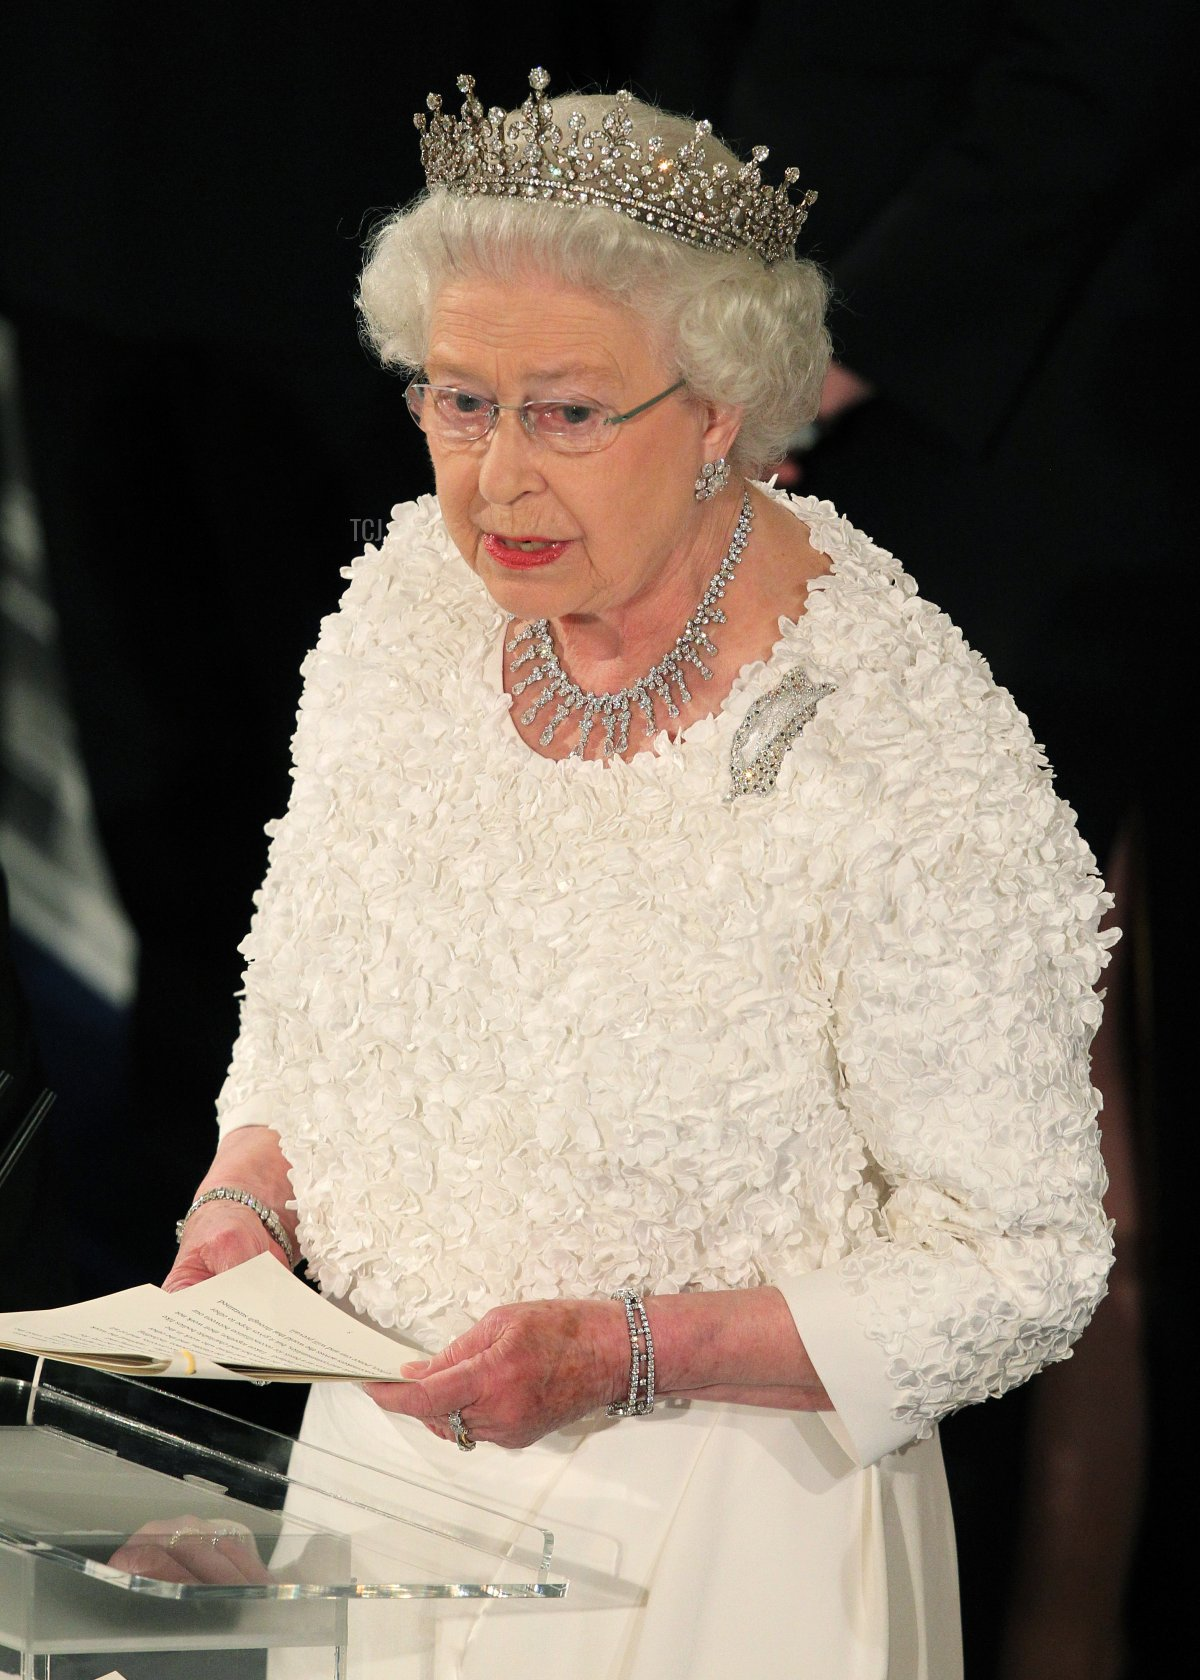 Britain's Queen Elizabeth II speaks to guest at a state dinner in Saint Patrick's Hall at Dublin Castle in Dublin on May 18, 2011